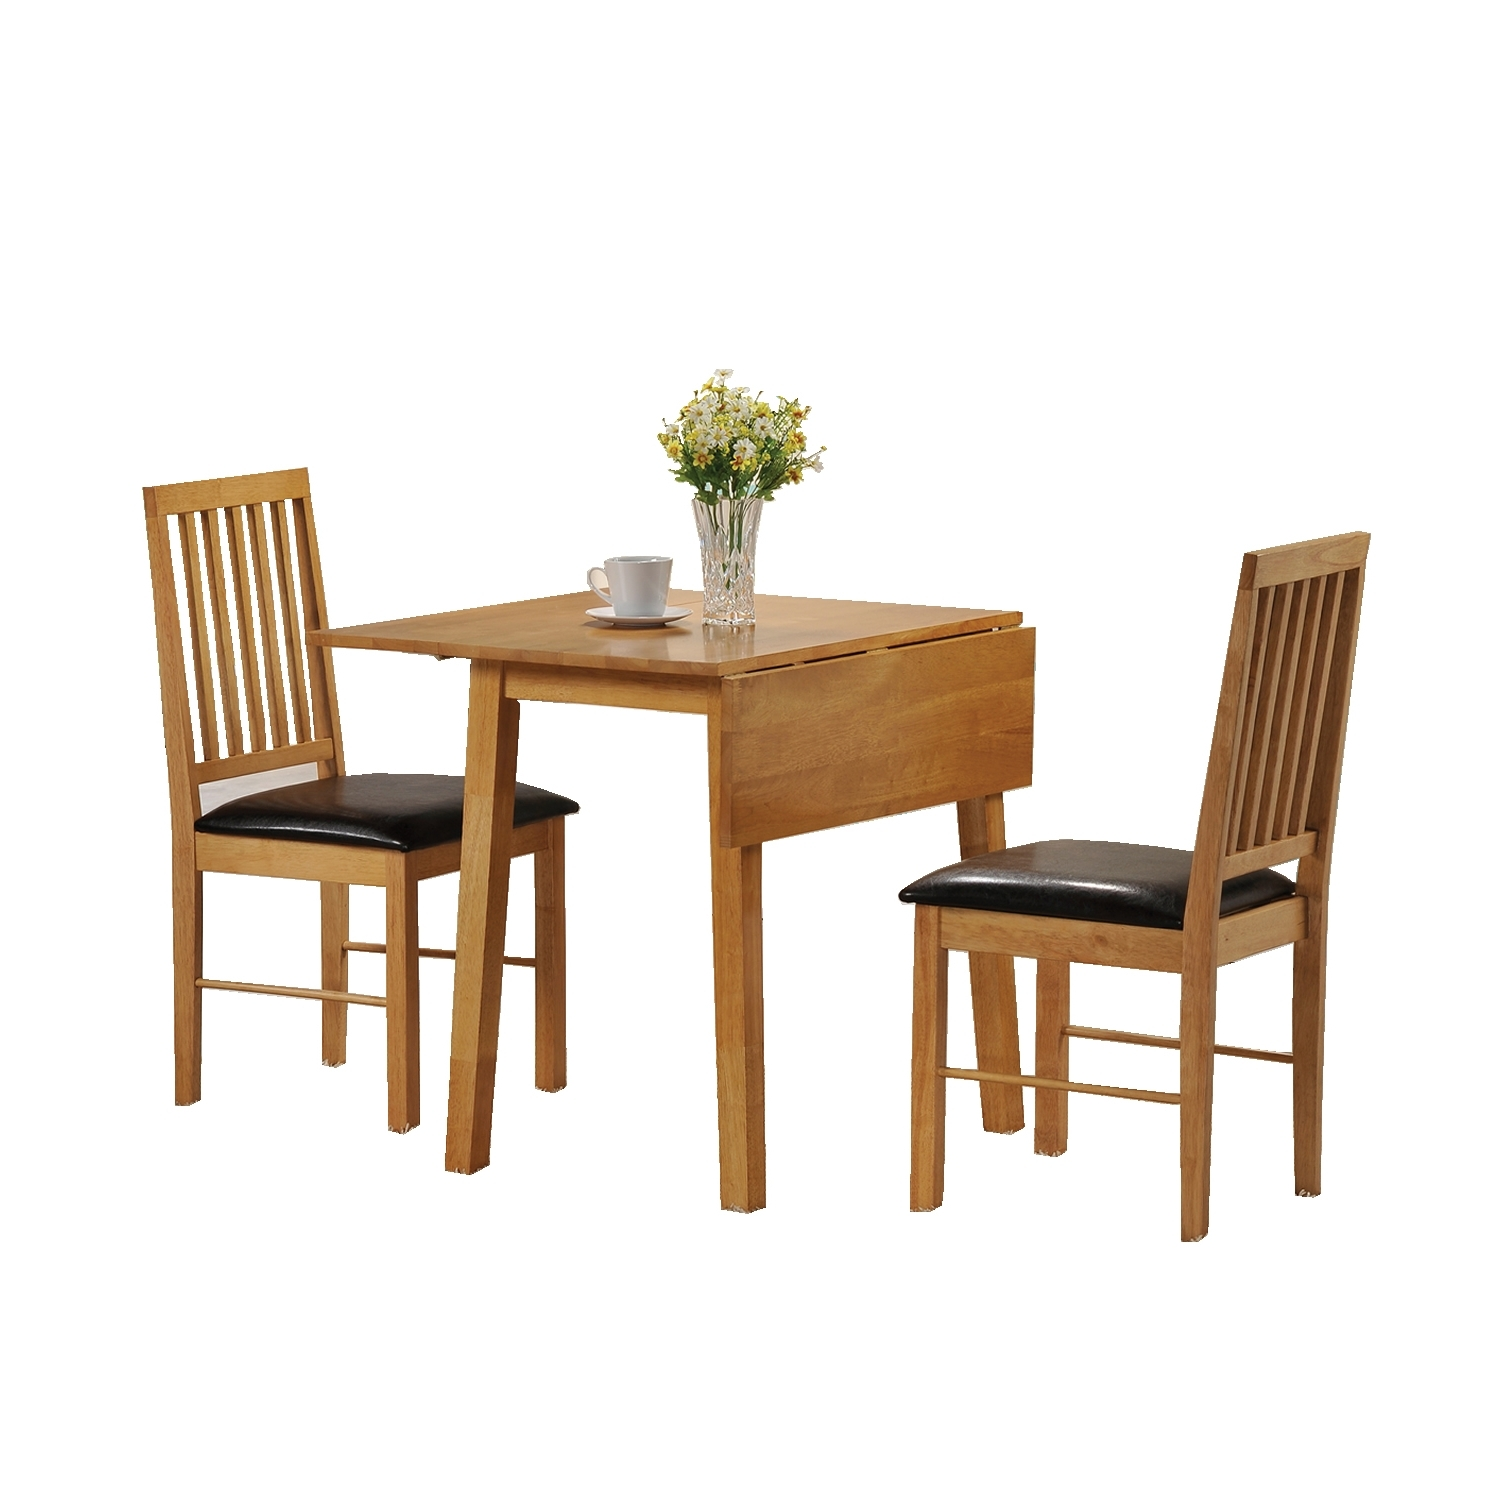 Latest Small 4 Seater Dining Tables Inside Dining Table And 2 Chairs Set 2 Seater Drop Leaf Set, Small Dining (View 22 of 25)